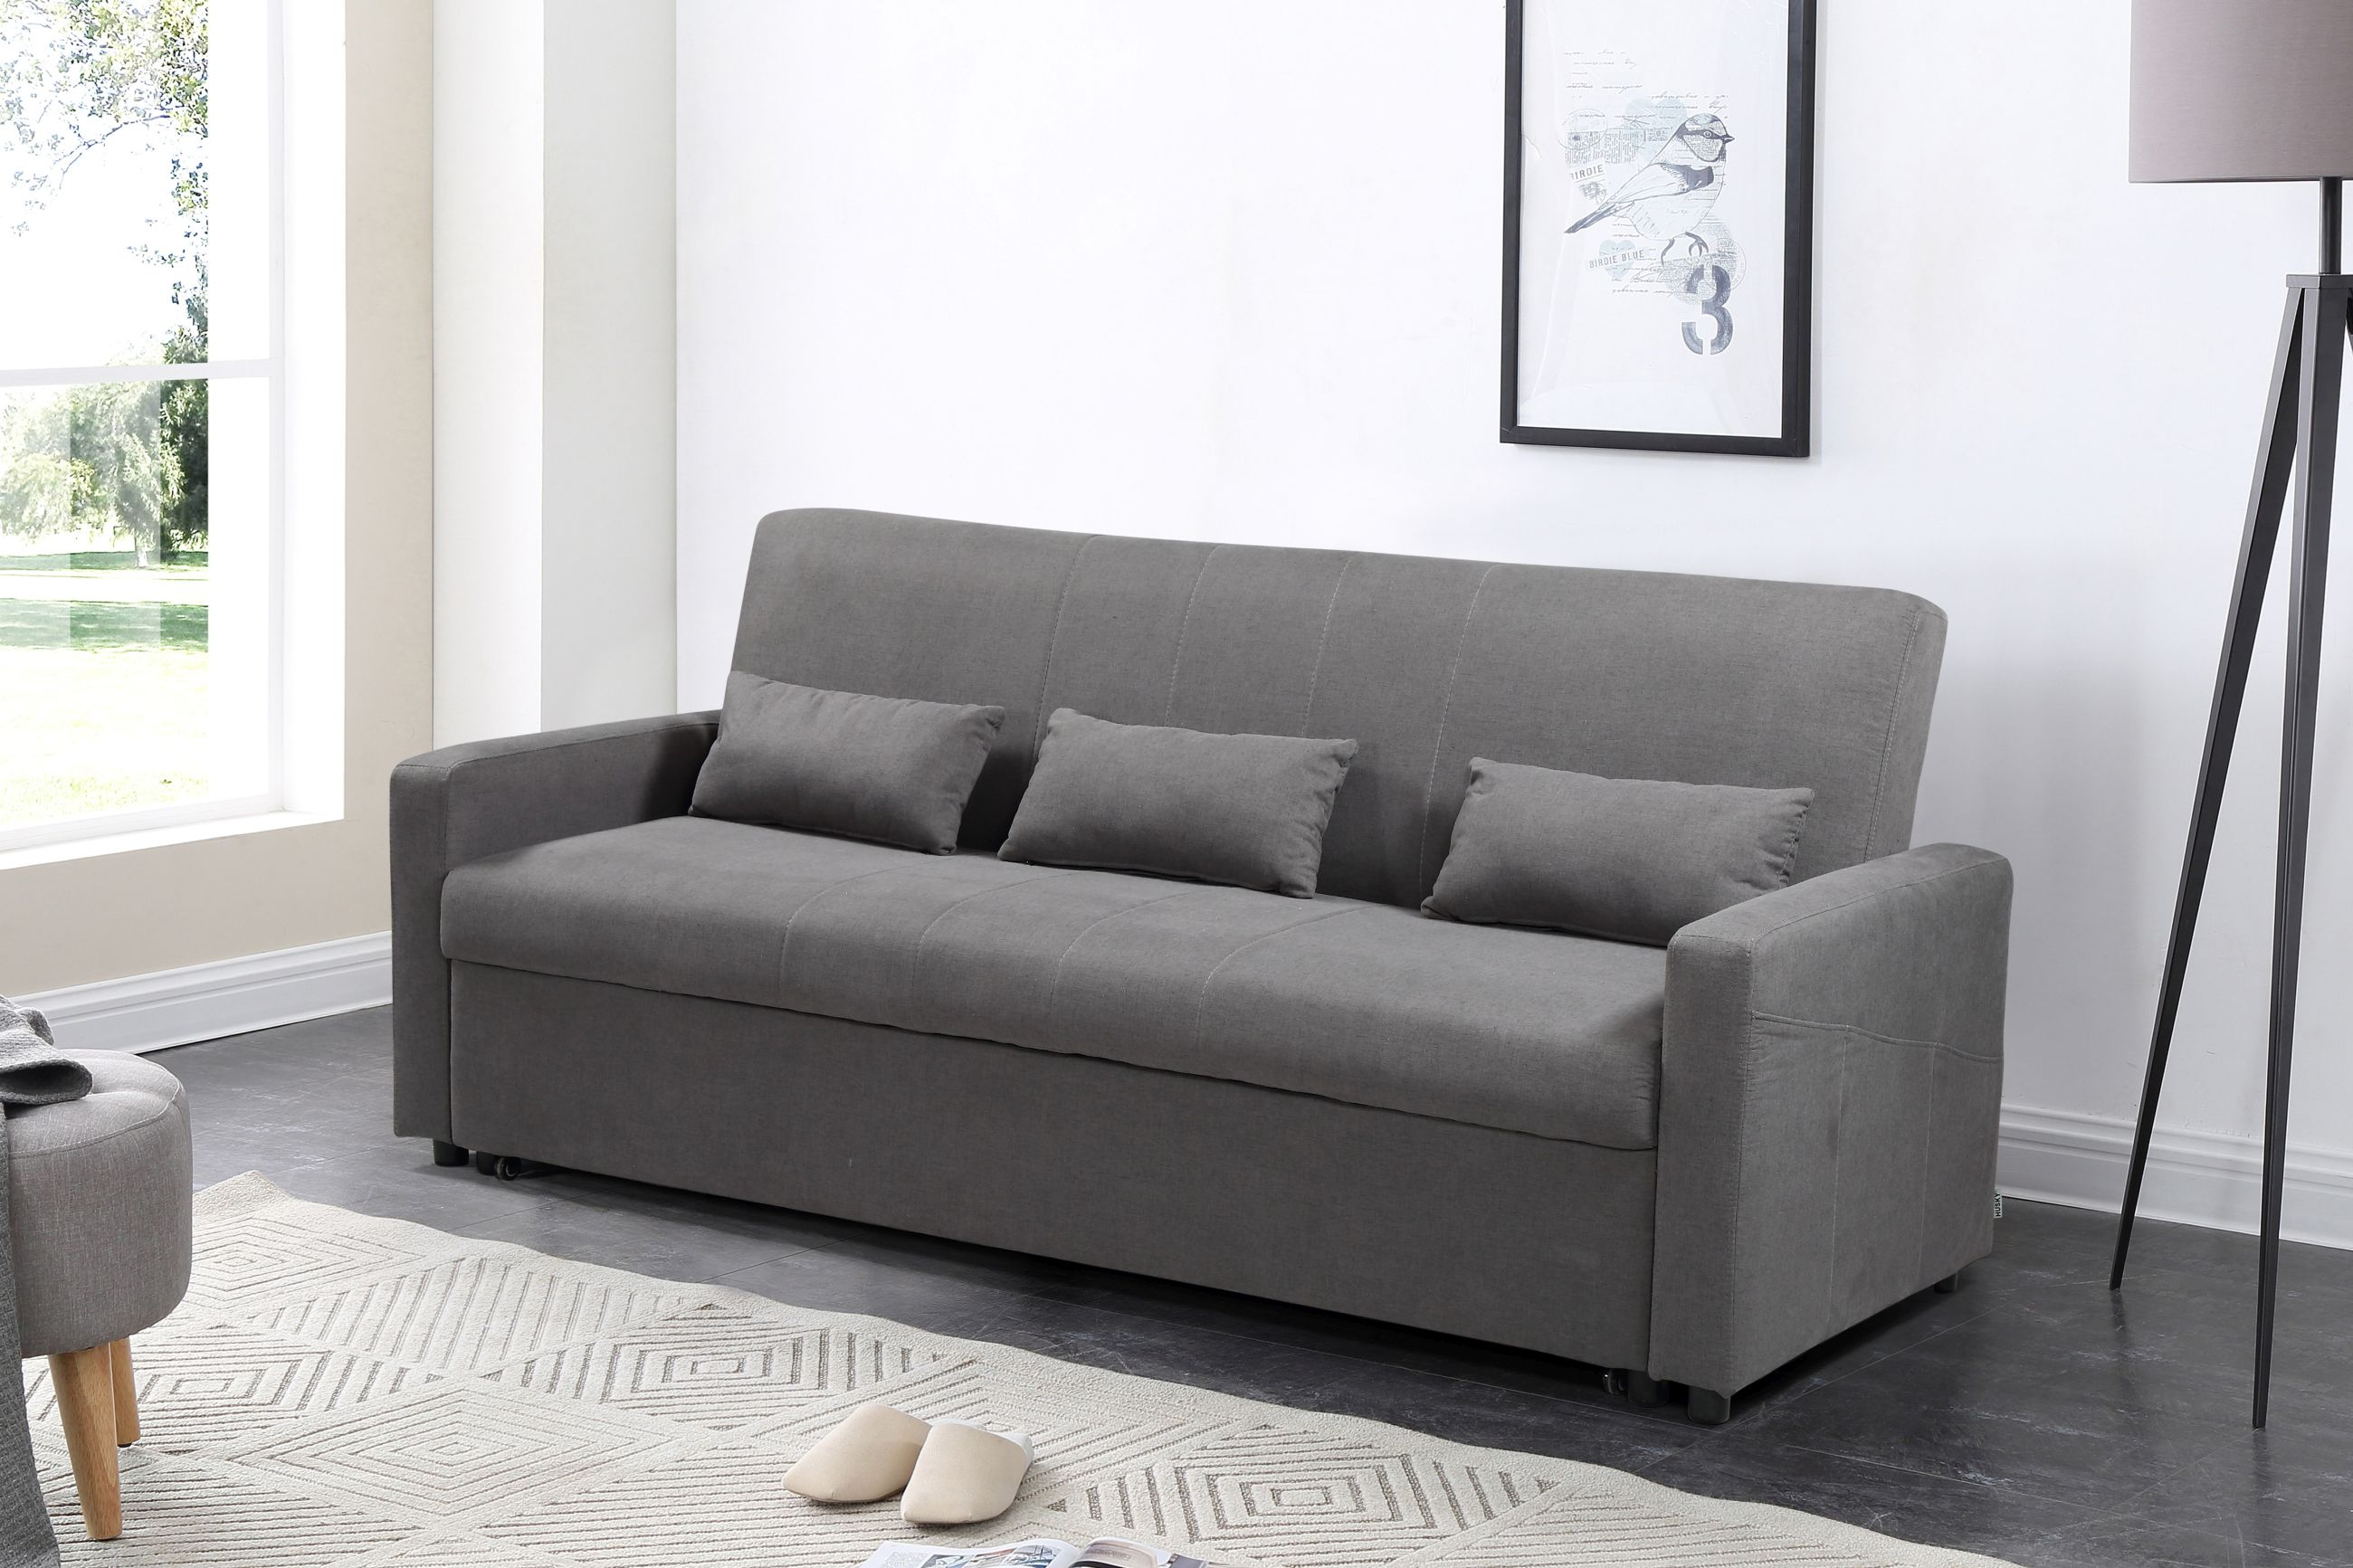 Marvelous Transformer Convertible Sofa Bed Grey Machost Co Dining Chair Design Ideas Machostcouk